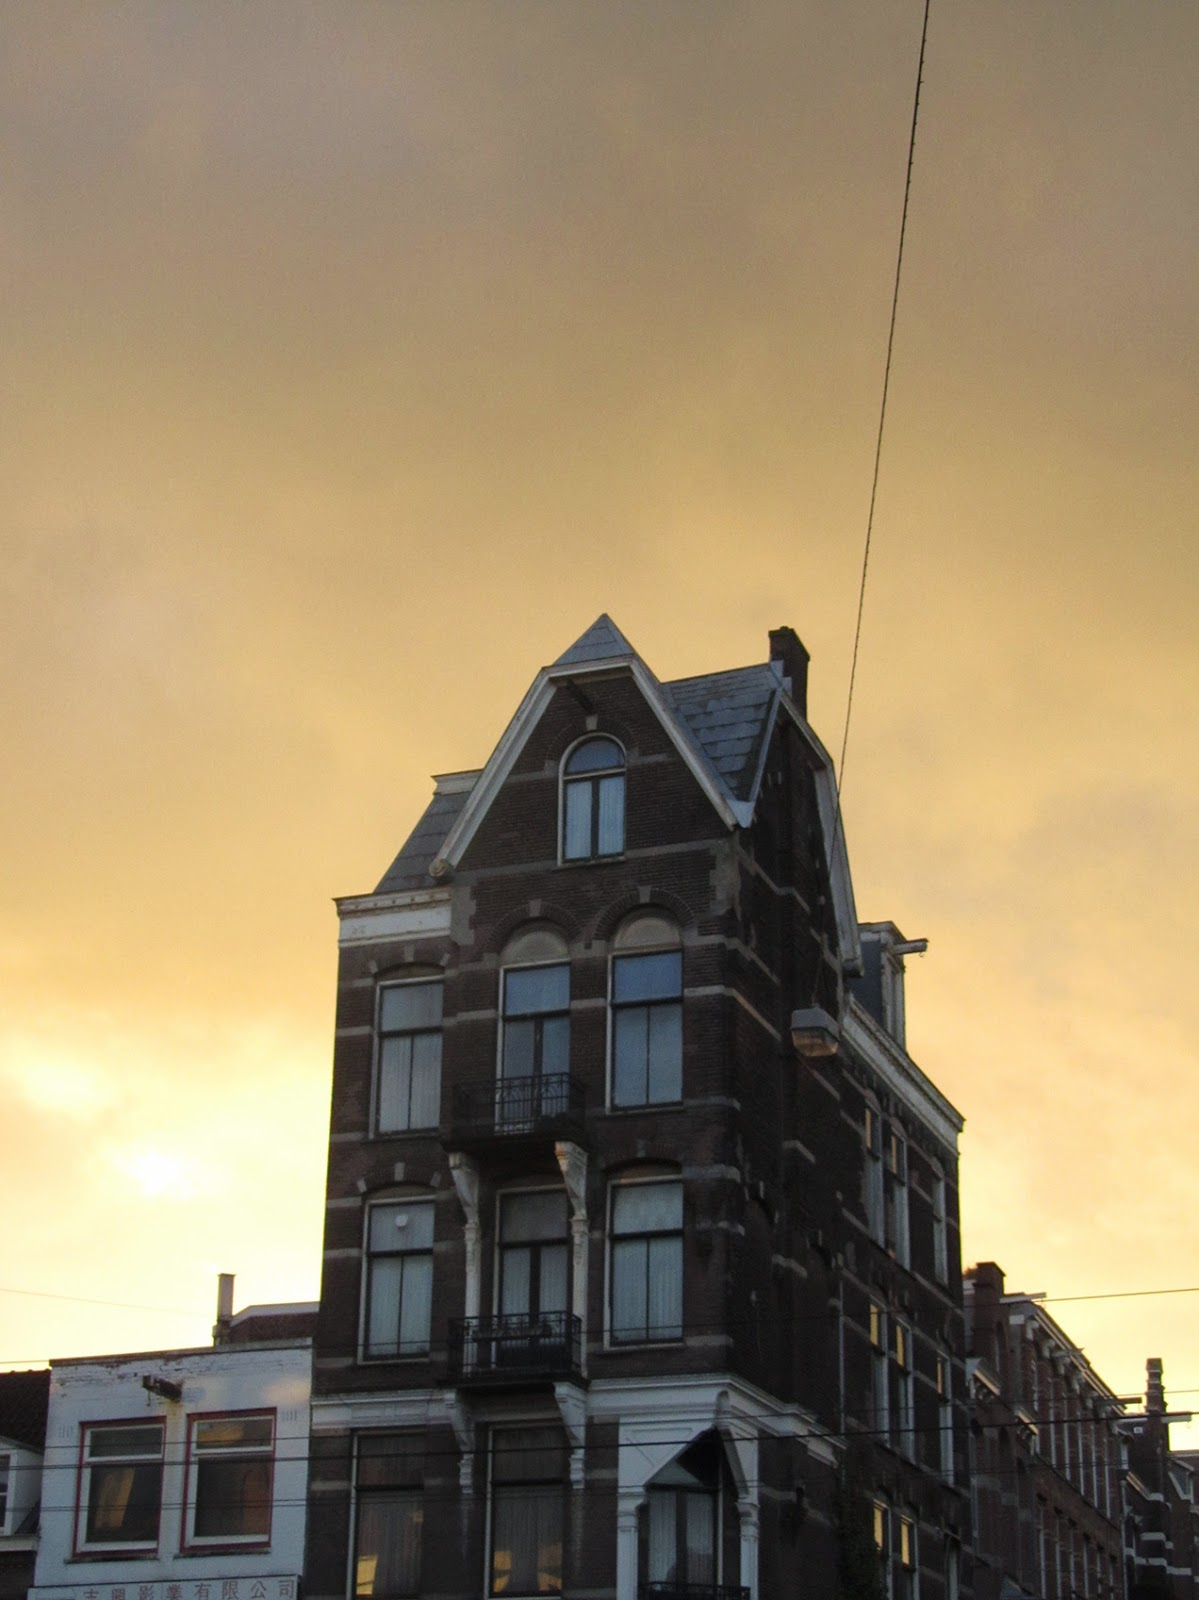 eery light with tall house and cable